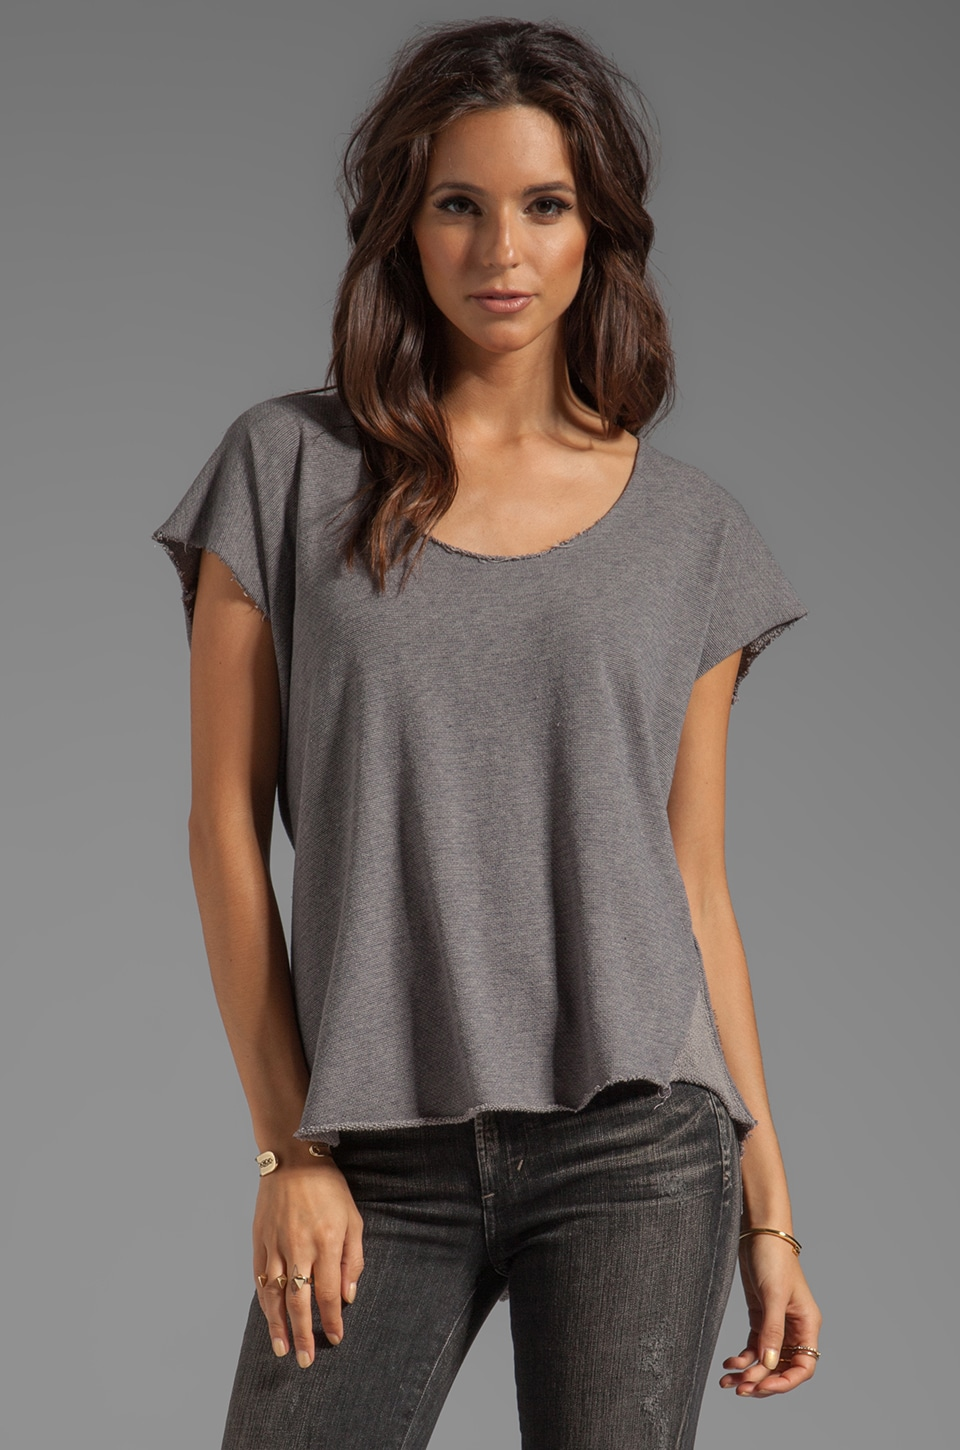 My Line Vivienne Basic Tee in Stone